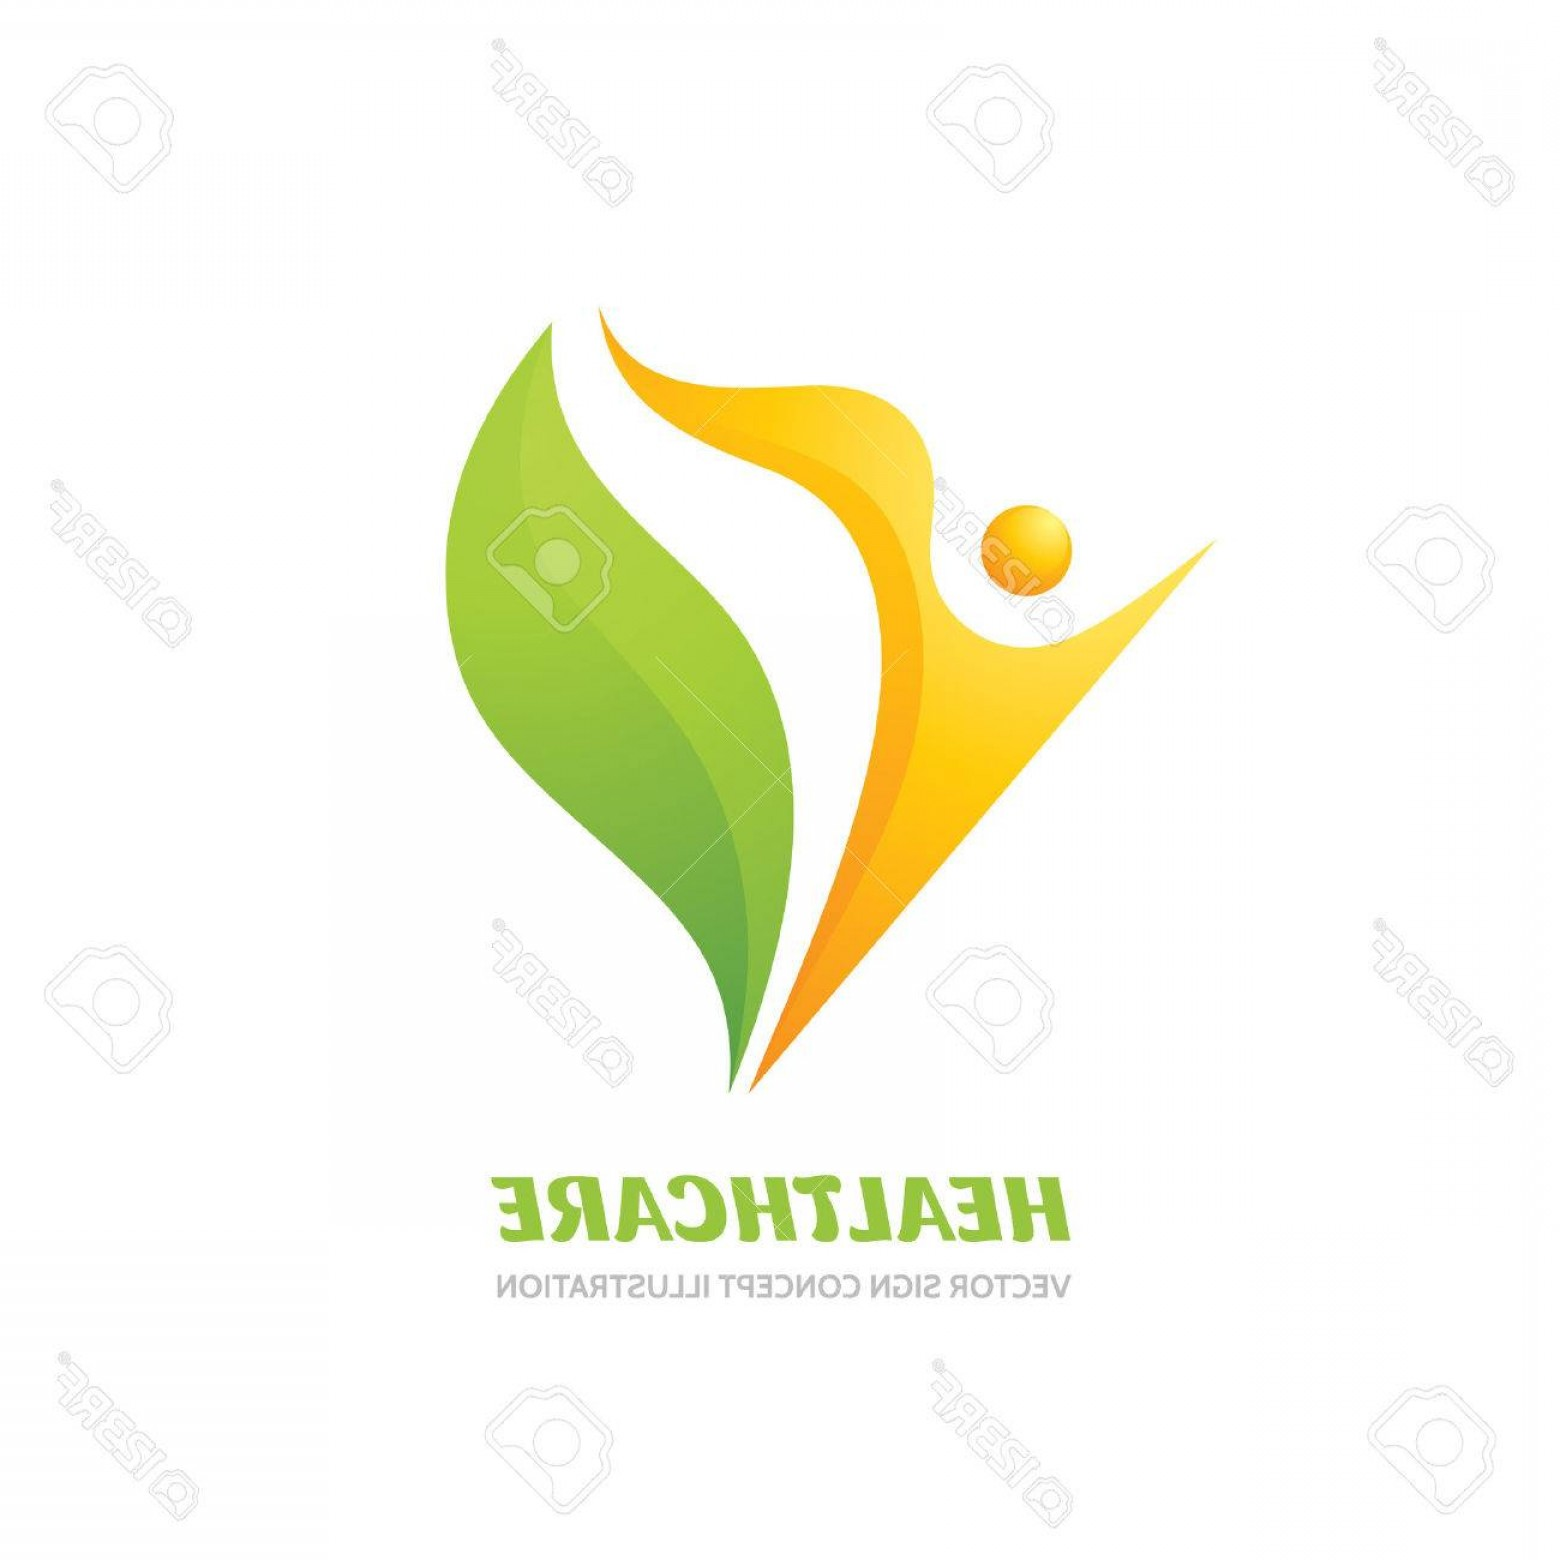 Health Vector Logo: Photostock Vector Healthcare Vector Logo Concept Illustration Health Logo Sign Healthy Logo Human Character Logo Sign